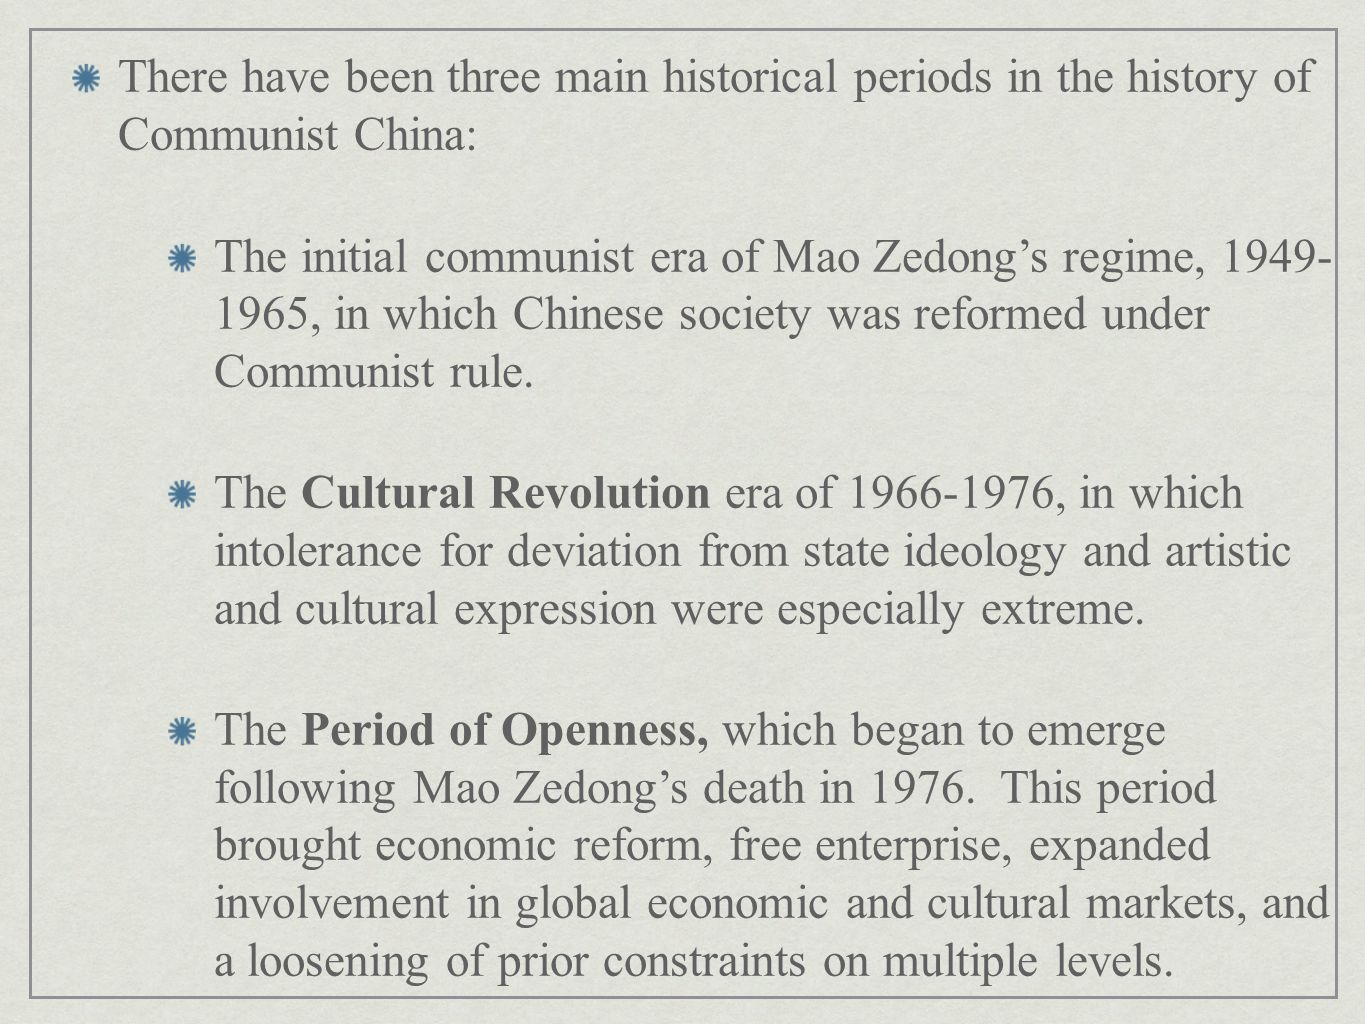 There have been three main historical periods in the history of Communist China: